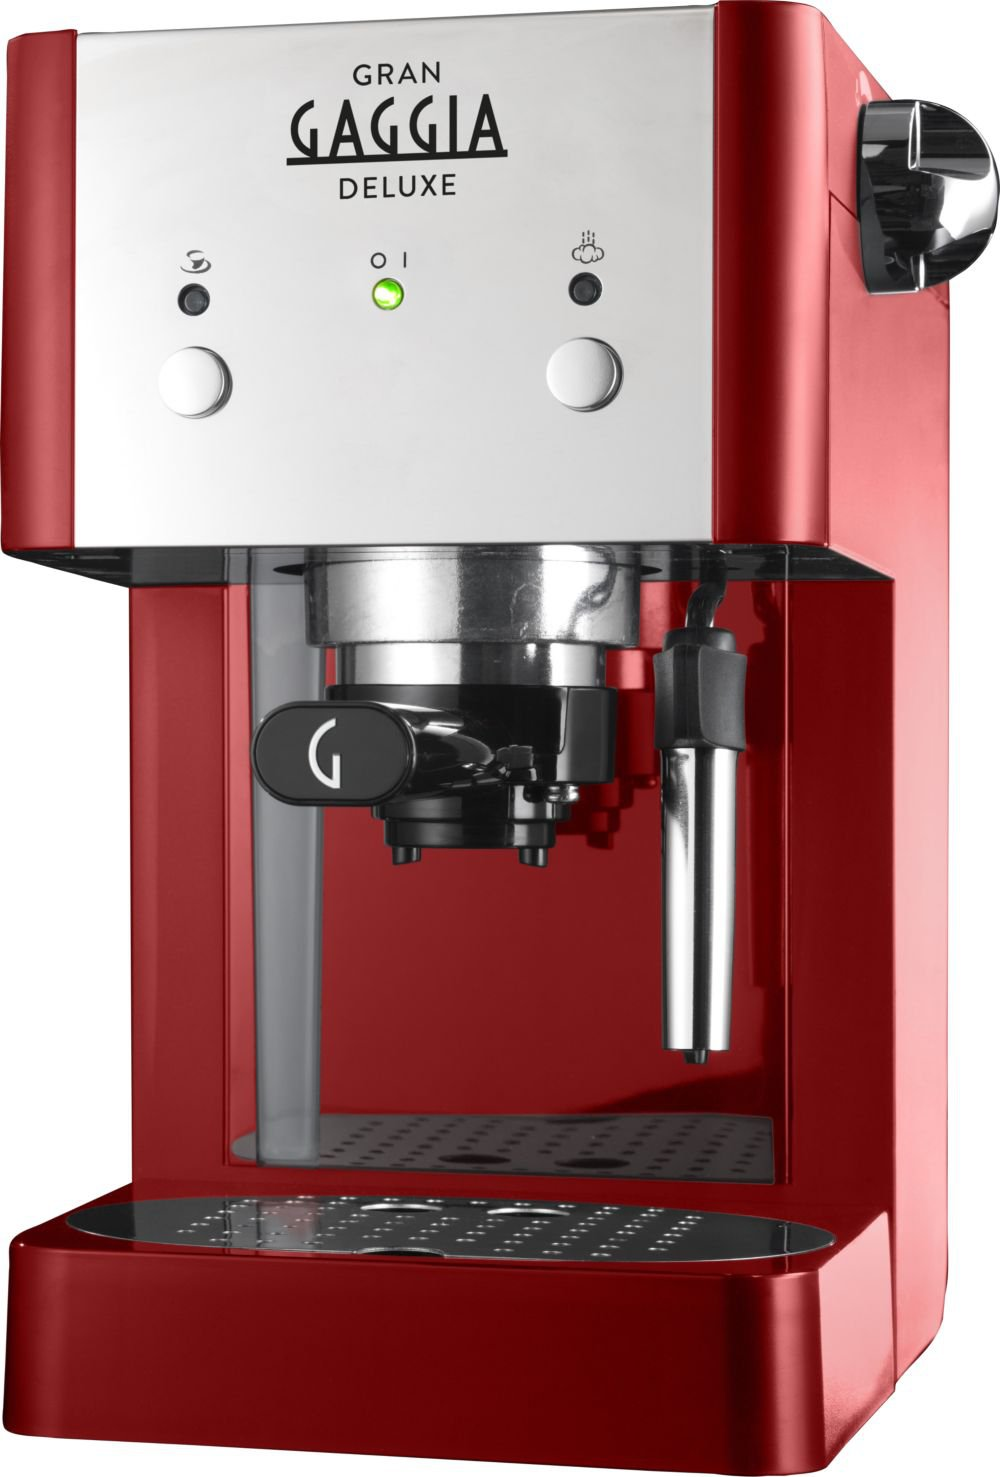 Gaggia RI8425/22 - Cafetera de espresso manual, 1 l, color rojo: Amazon.es: Hogar